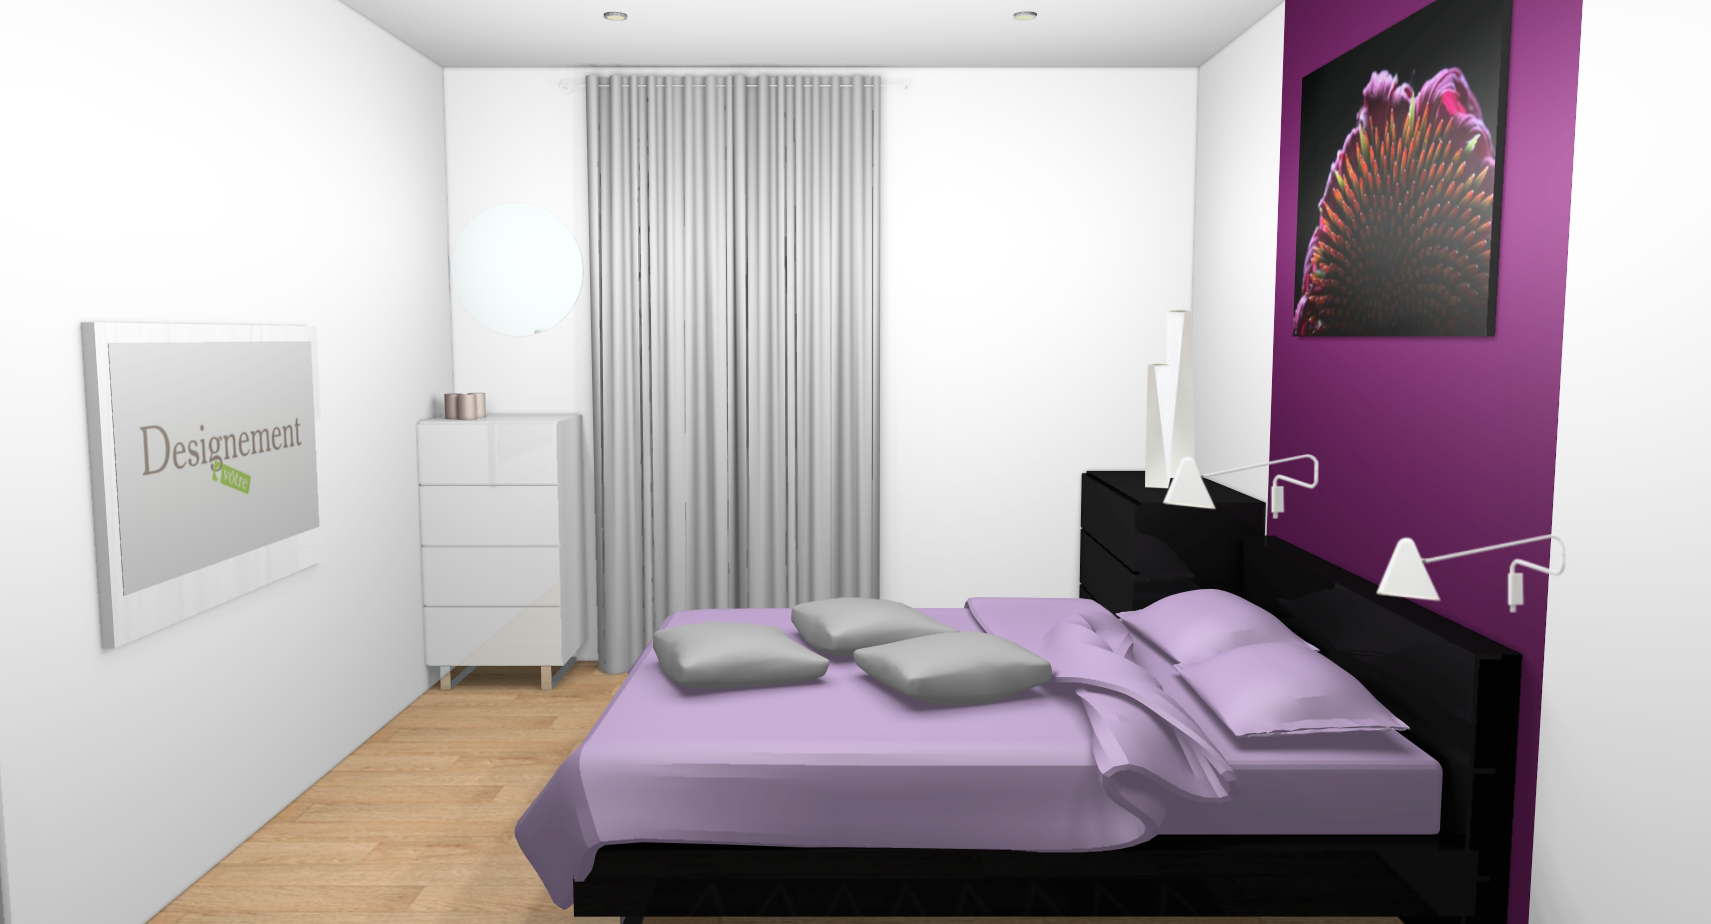 D coration chambre prune exemples d 39 am nagements for Decoration une chambre